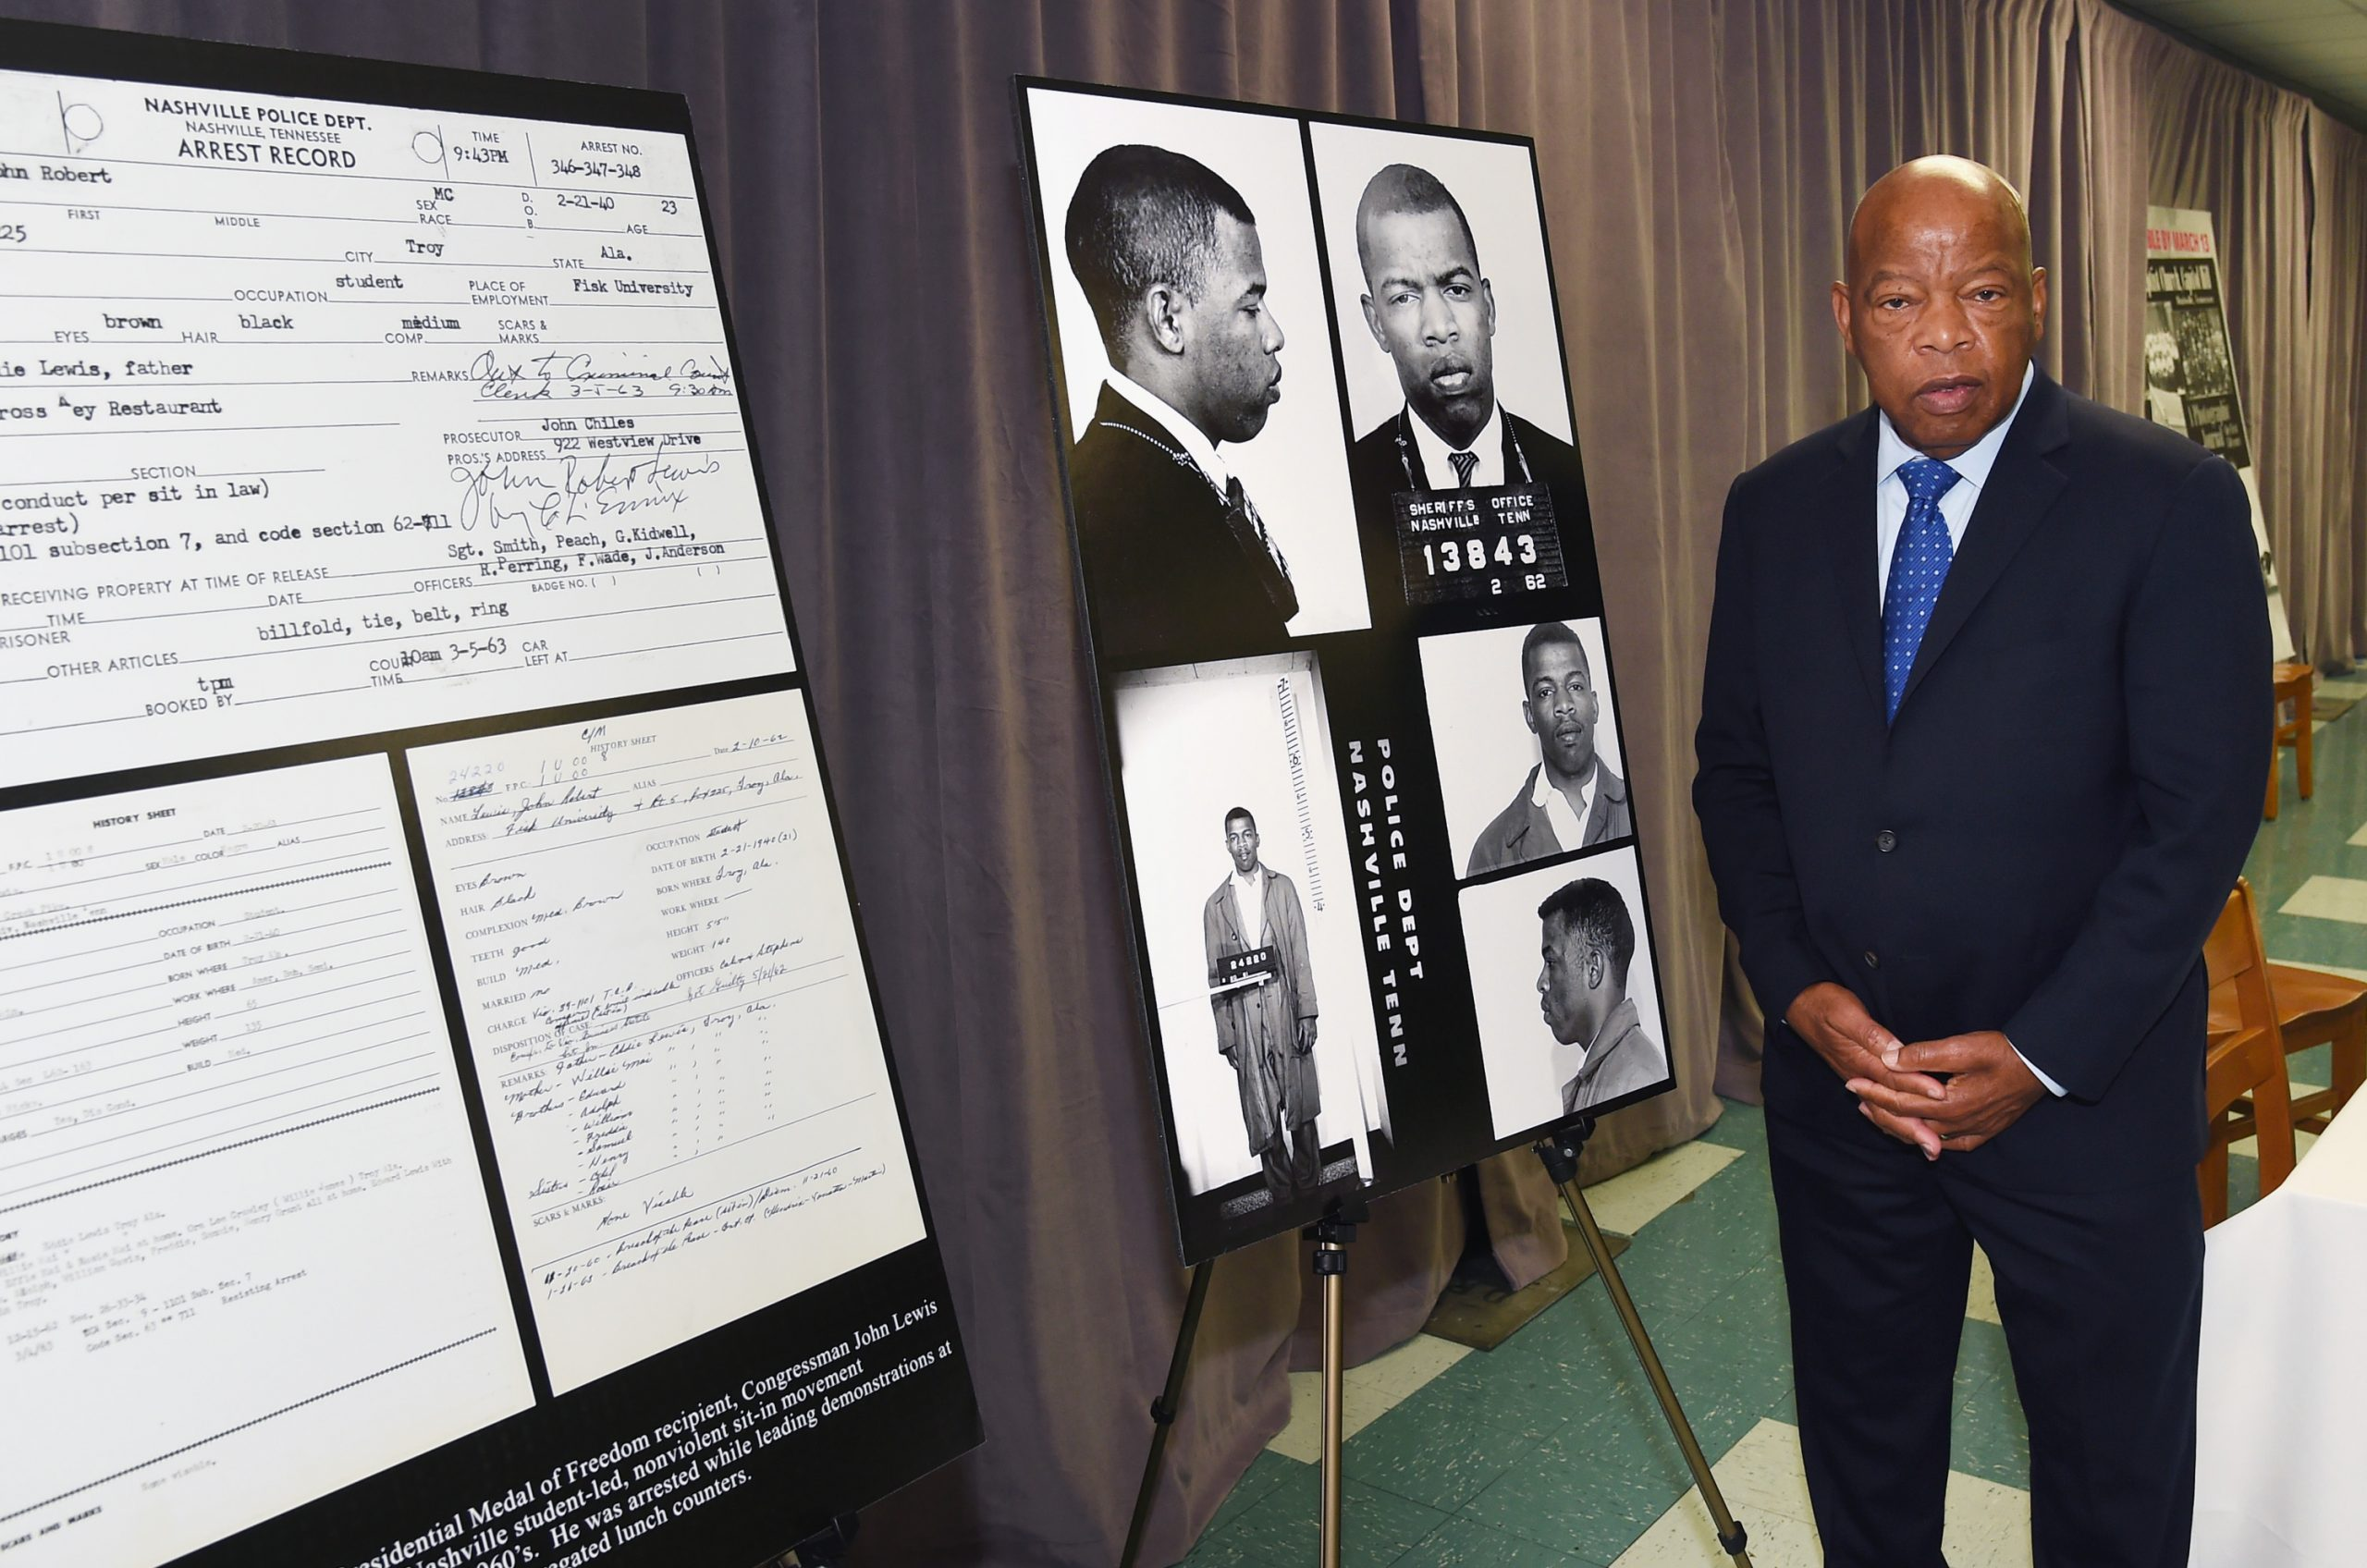 NASHVILLE, TN - NOVEMBER 19, 2016: Congressman/Civil Rights Icon John Lewis views for the first time images and his arrest record for leading a nonviolent sit-in at Nashville's segregated lunch counters, March 5, 1963. (Photo by Rick Diamond/Getty Images)